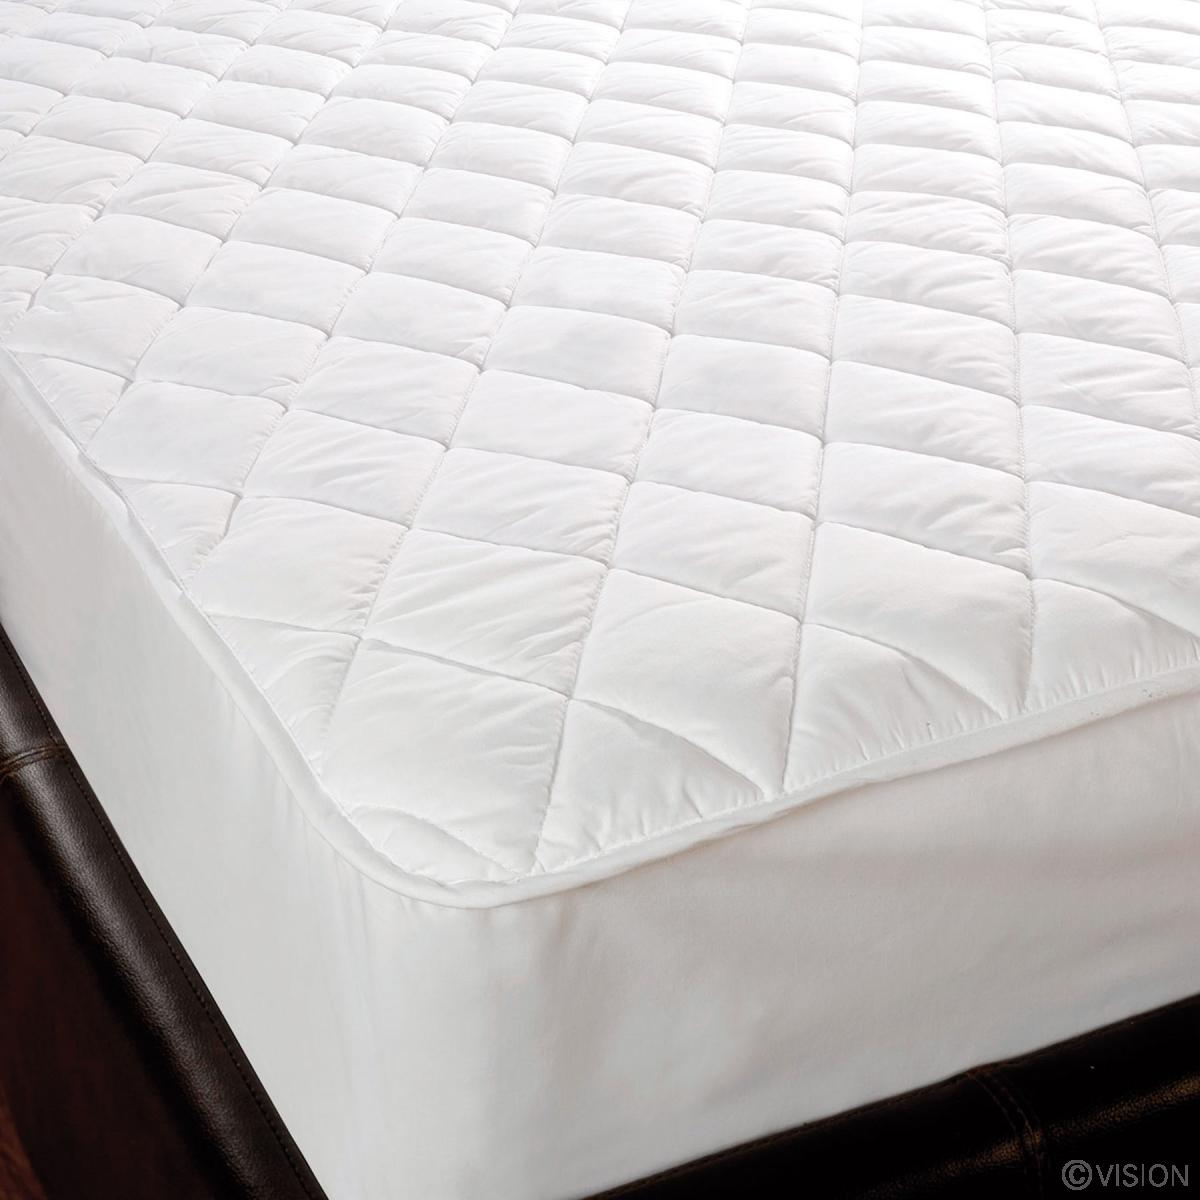 fitted mattress protector. Diamond Dry Waterproof Mattress Protector (Fitted) Fitted E